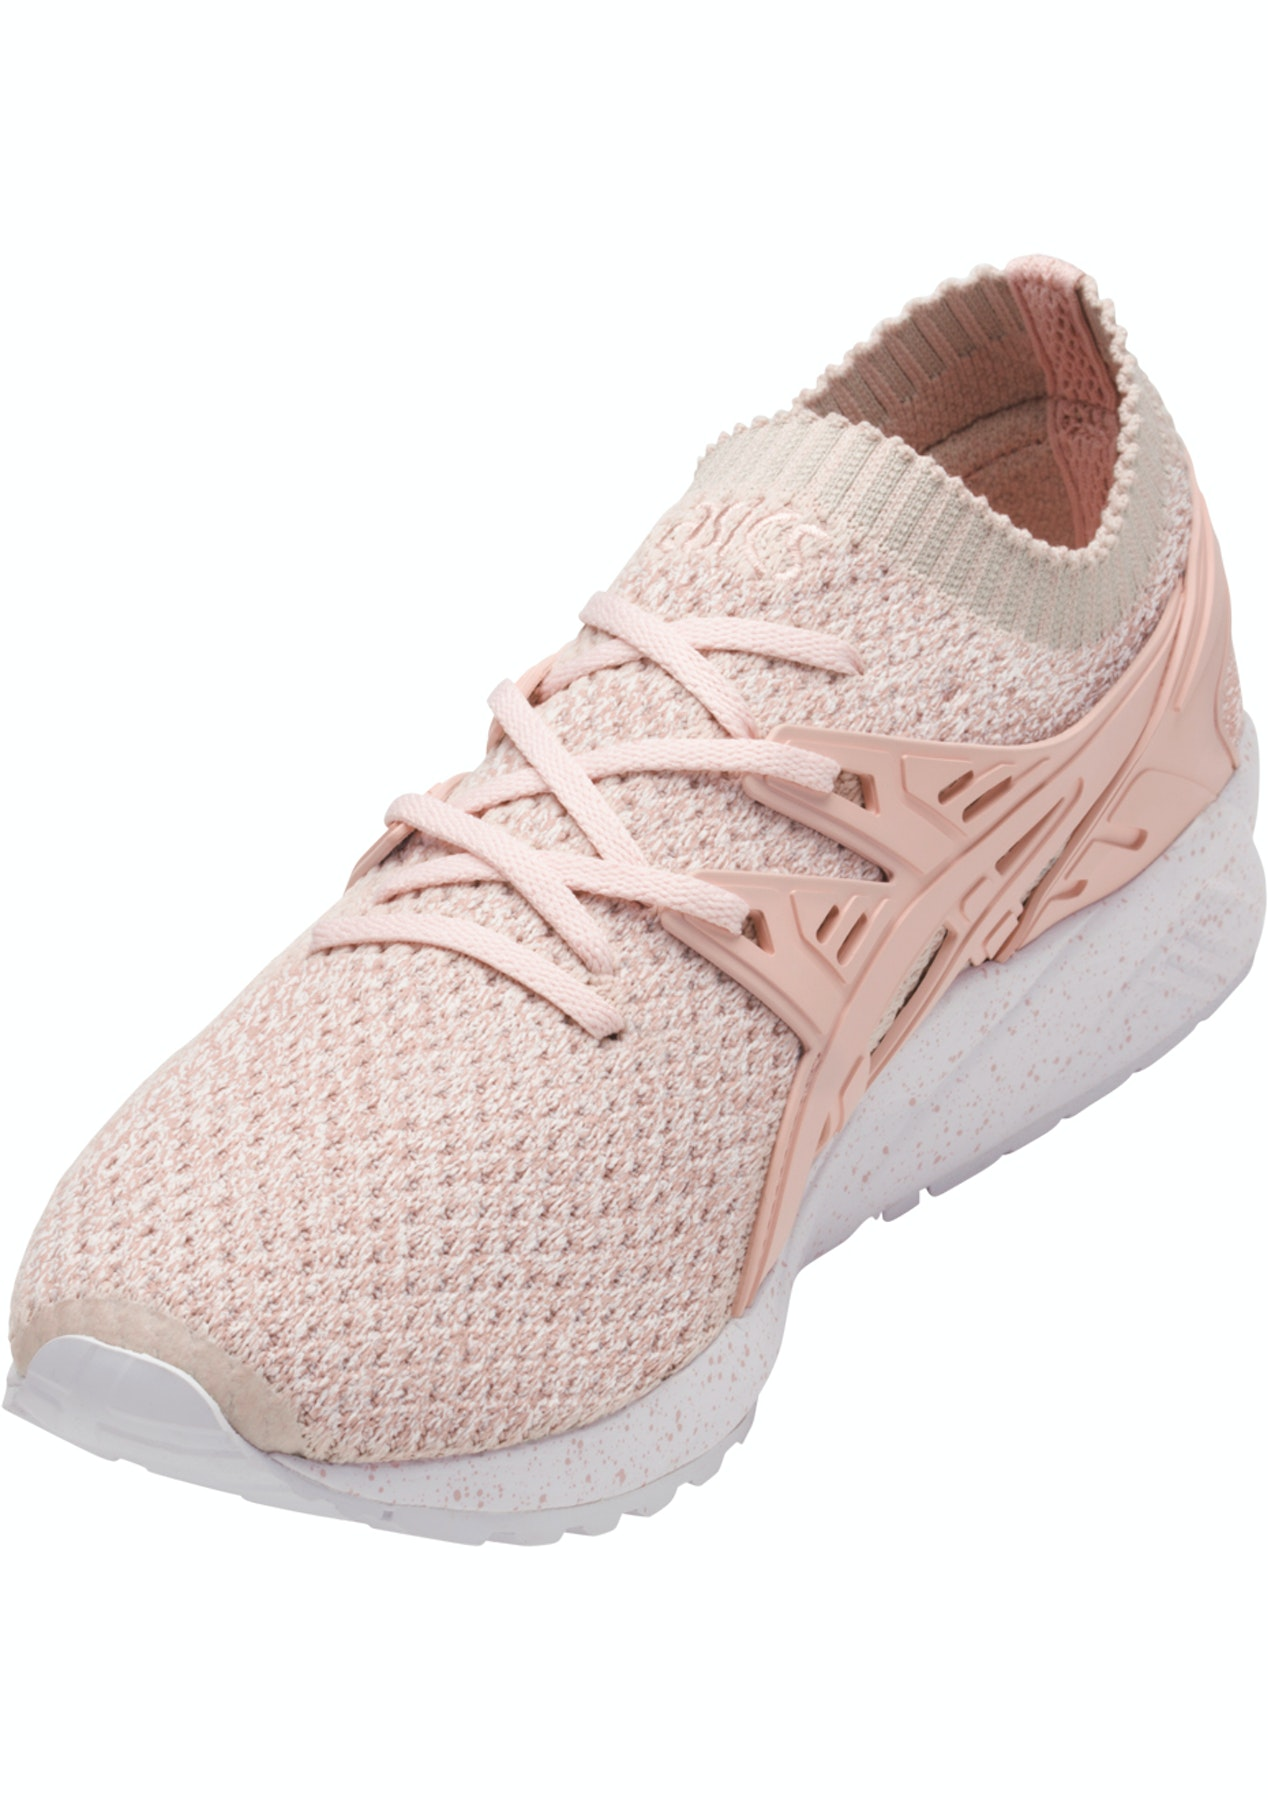 78755b4aad2a Asics Tiger - Gel-Kayano Trainer Knit - Unisex - Evening Sand Evening Sand  - Mens Outlet Price Drop - Onceit